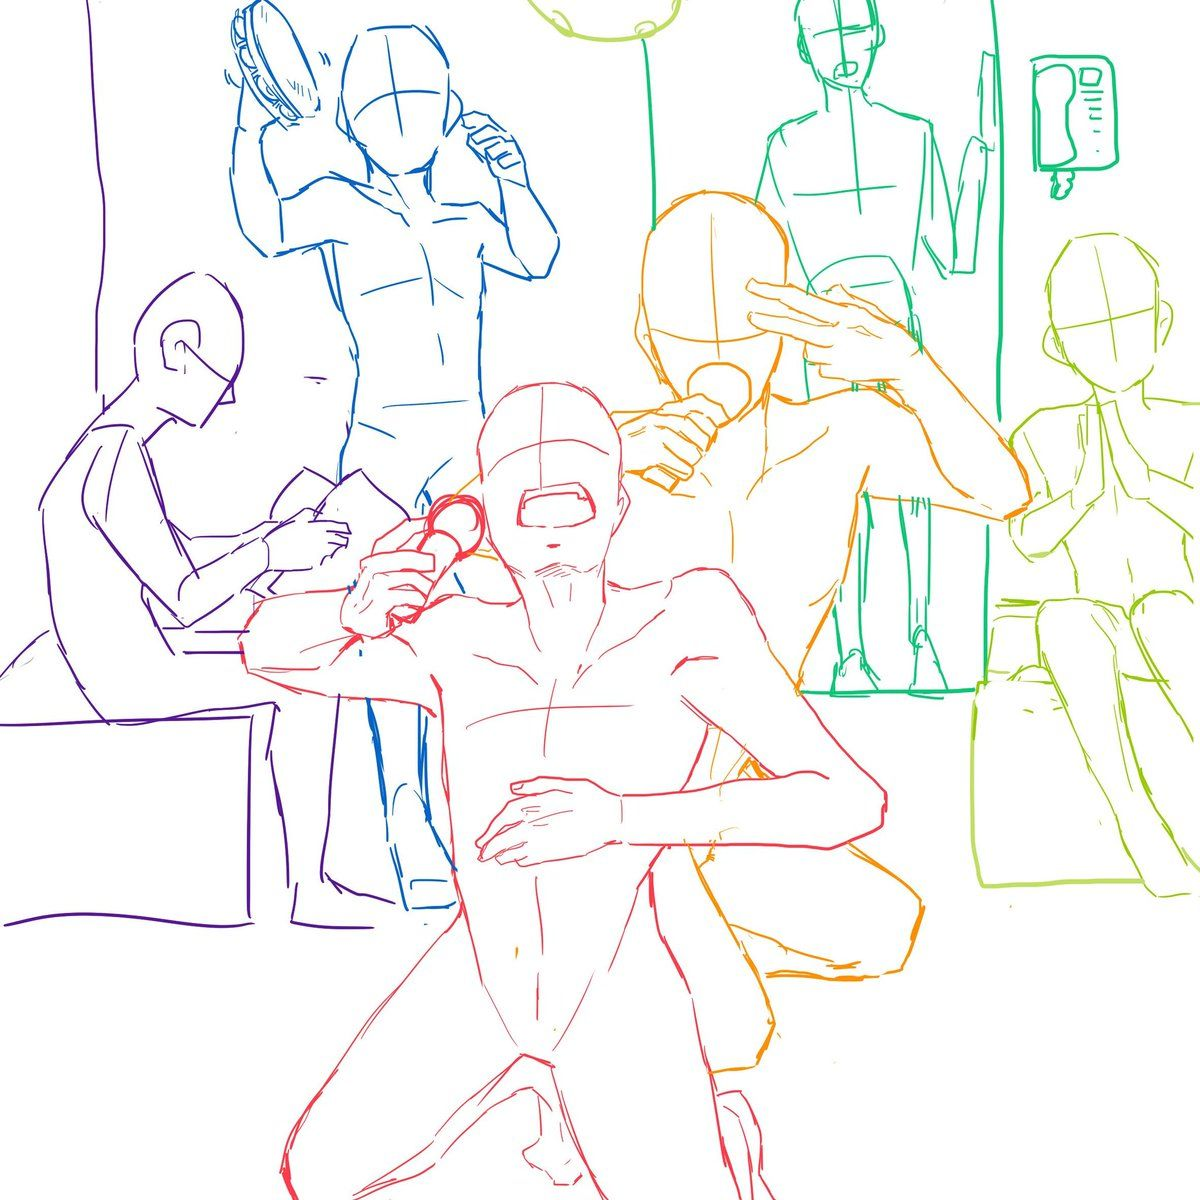 Pin By El Rincon Del Cotorro On Draw In 2020 Anime Poses Reference Drawings Of Friends Art Reference Photos